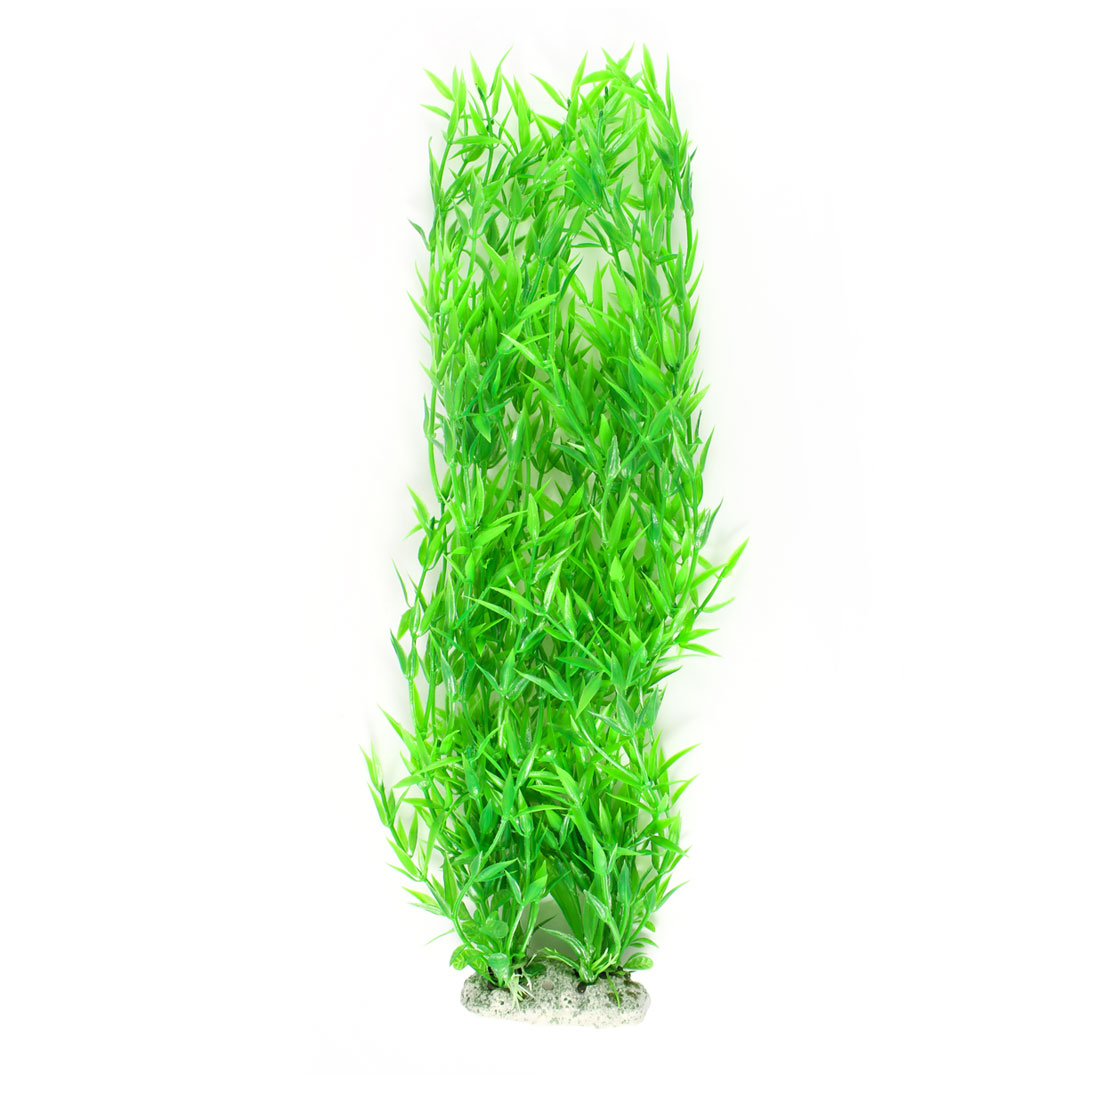 "16.9"" Higth Green Plastic Underwater Plants Grass Aquarium Decor by"